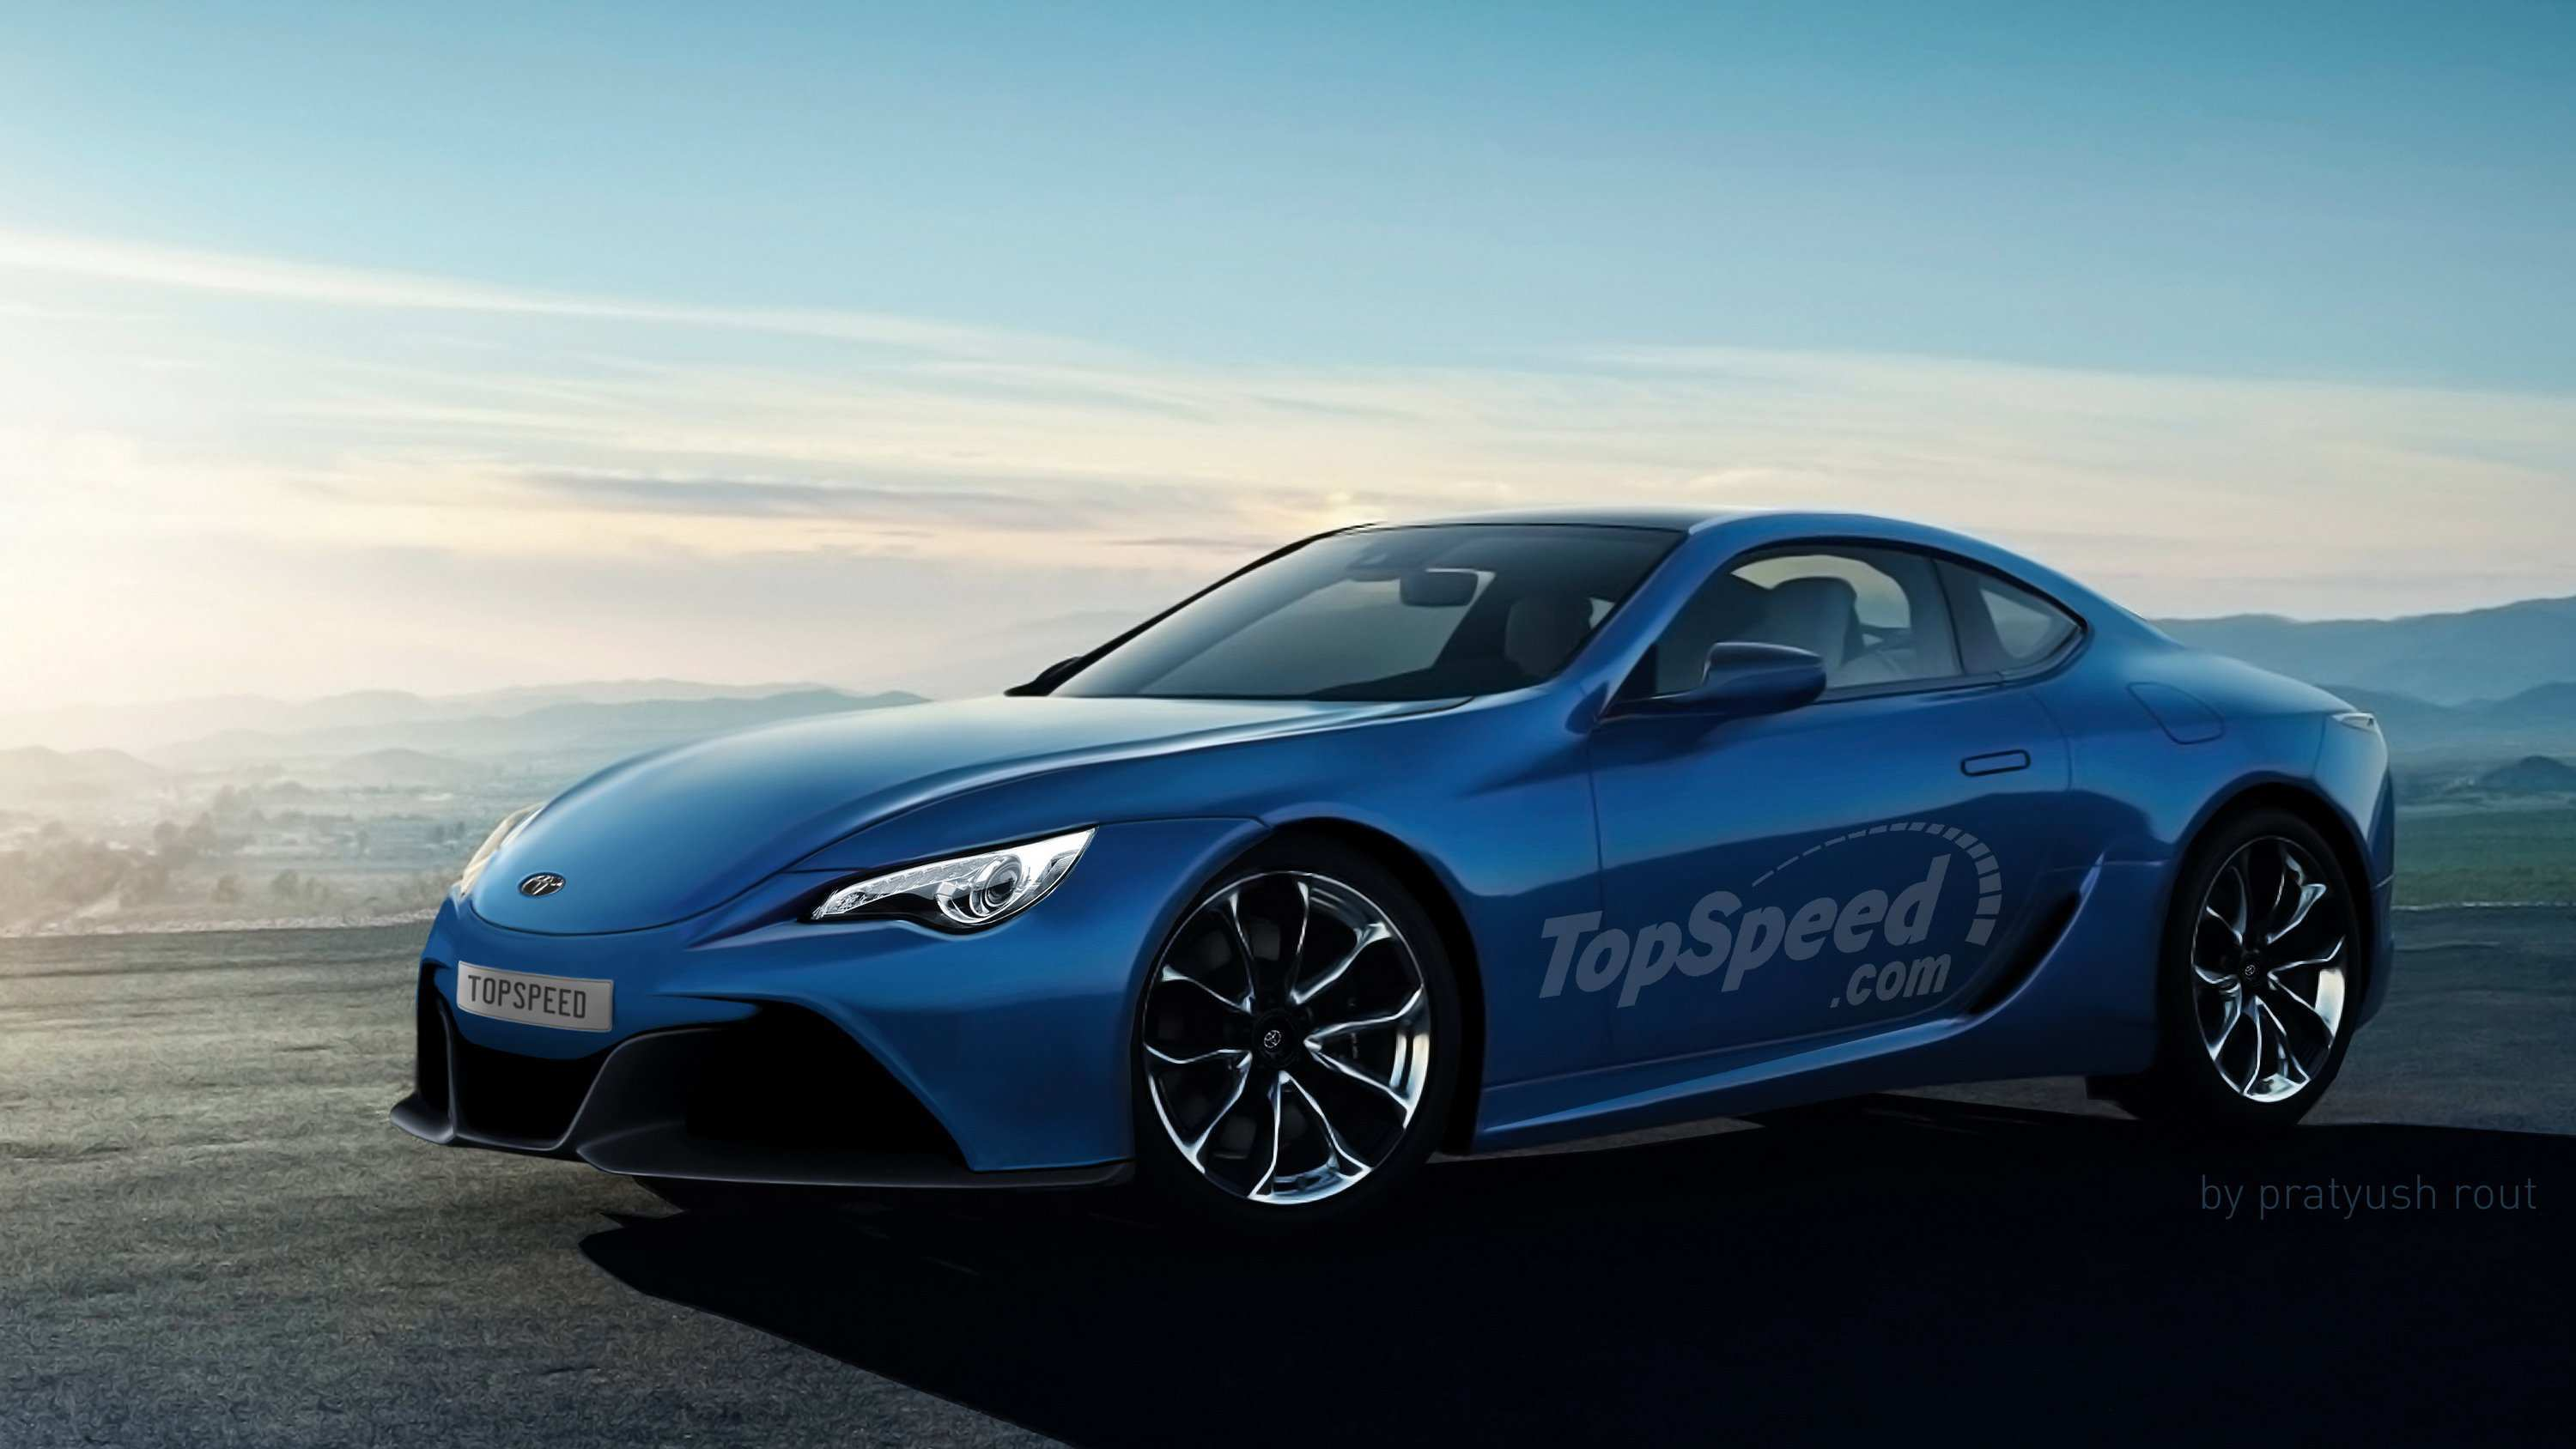 65 Gallery of 2020 Toyota Brz History for 2020 Toyota Brz